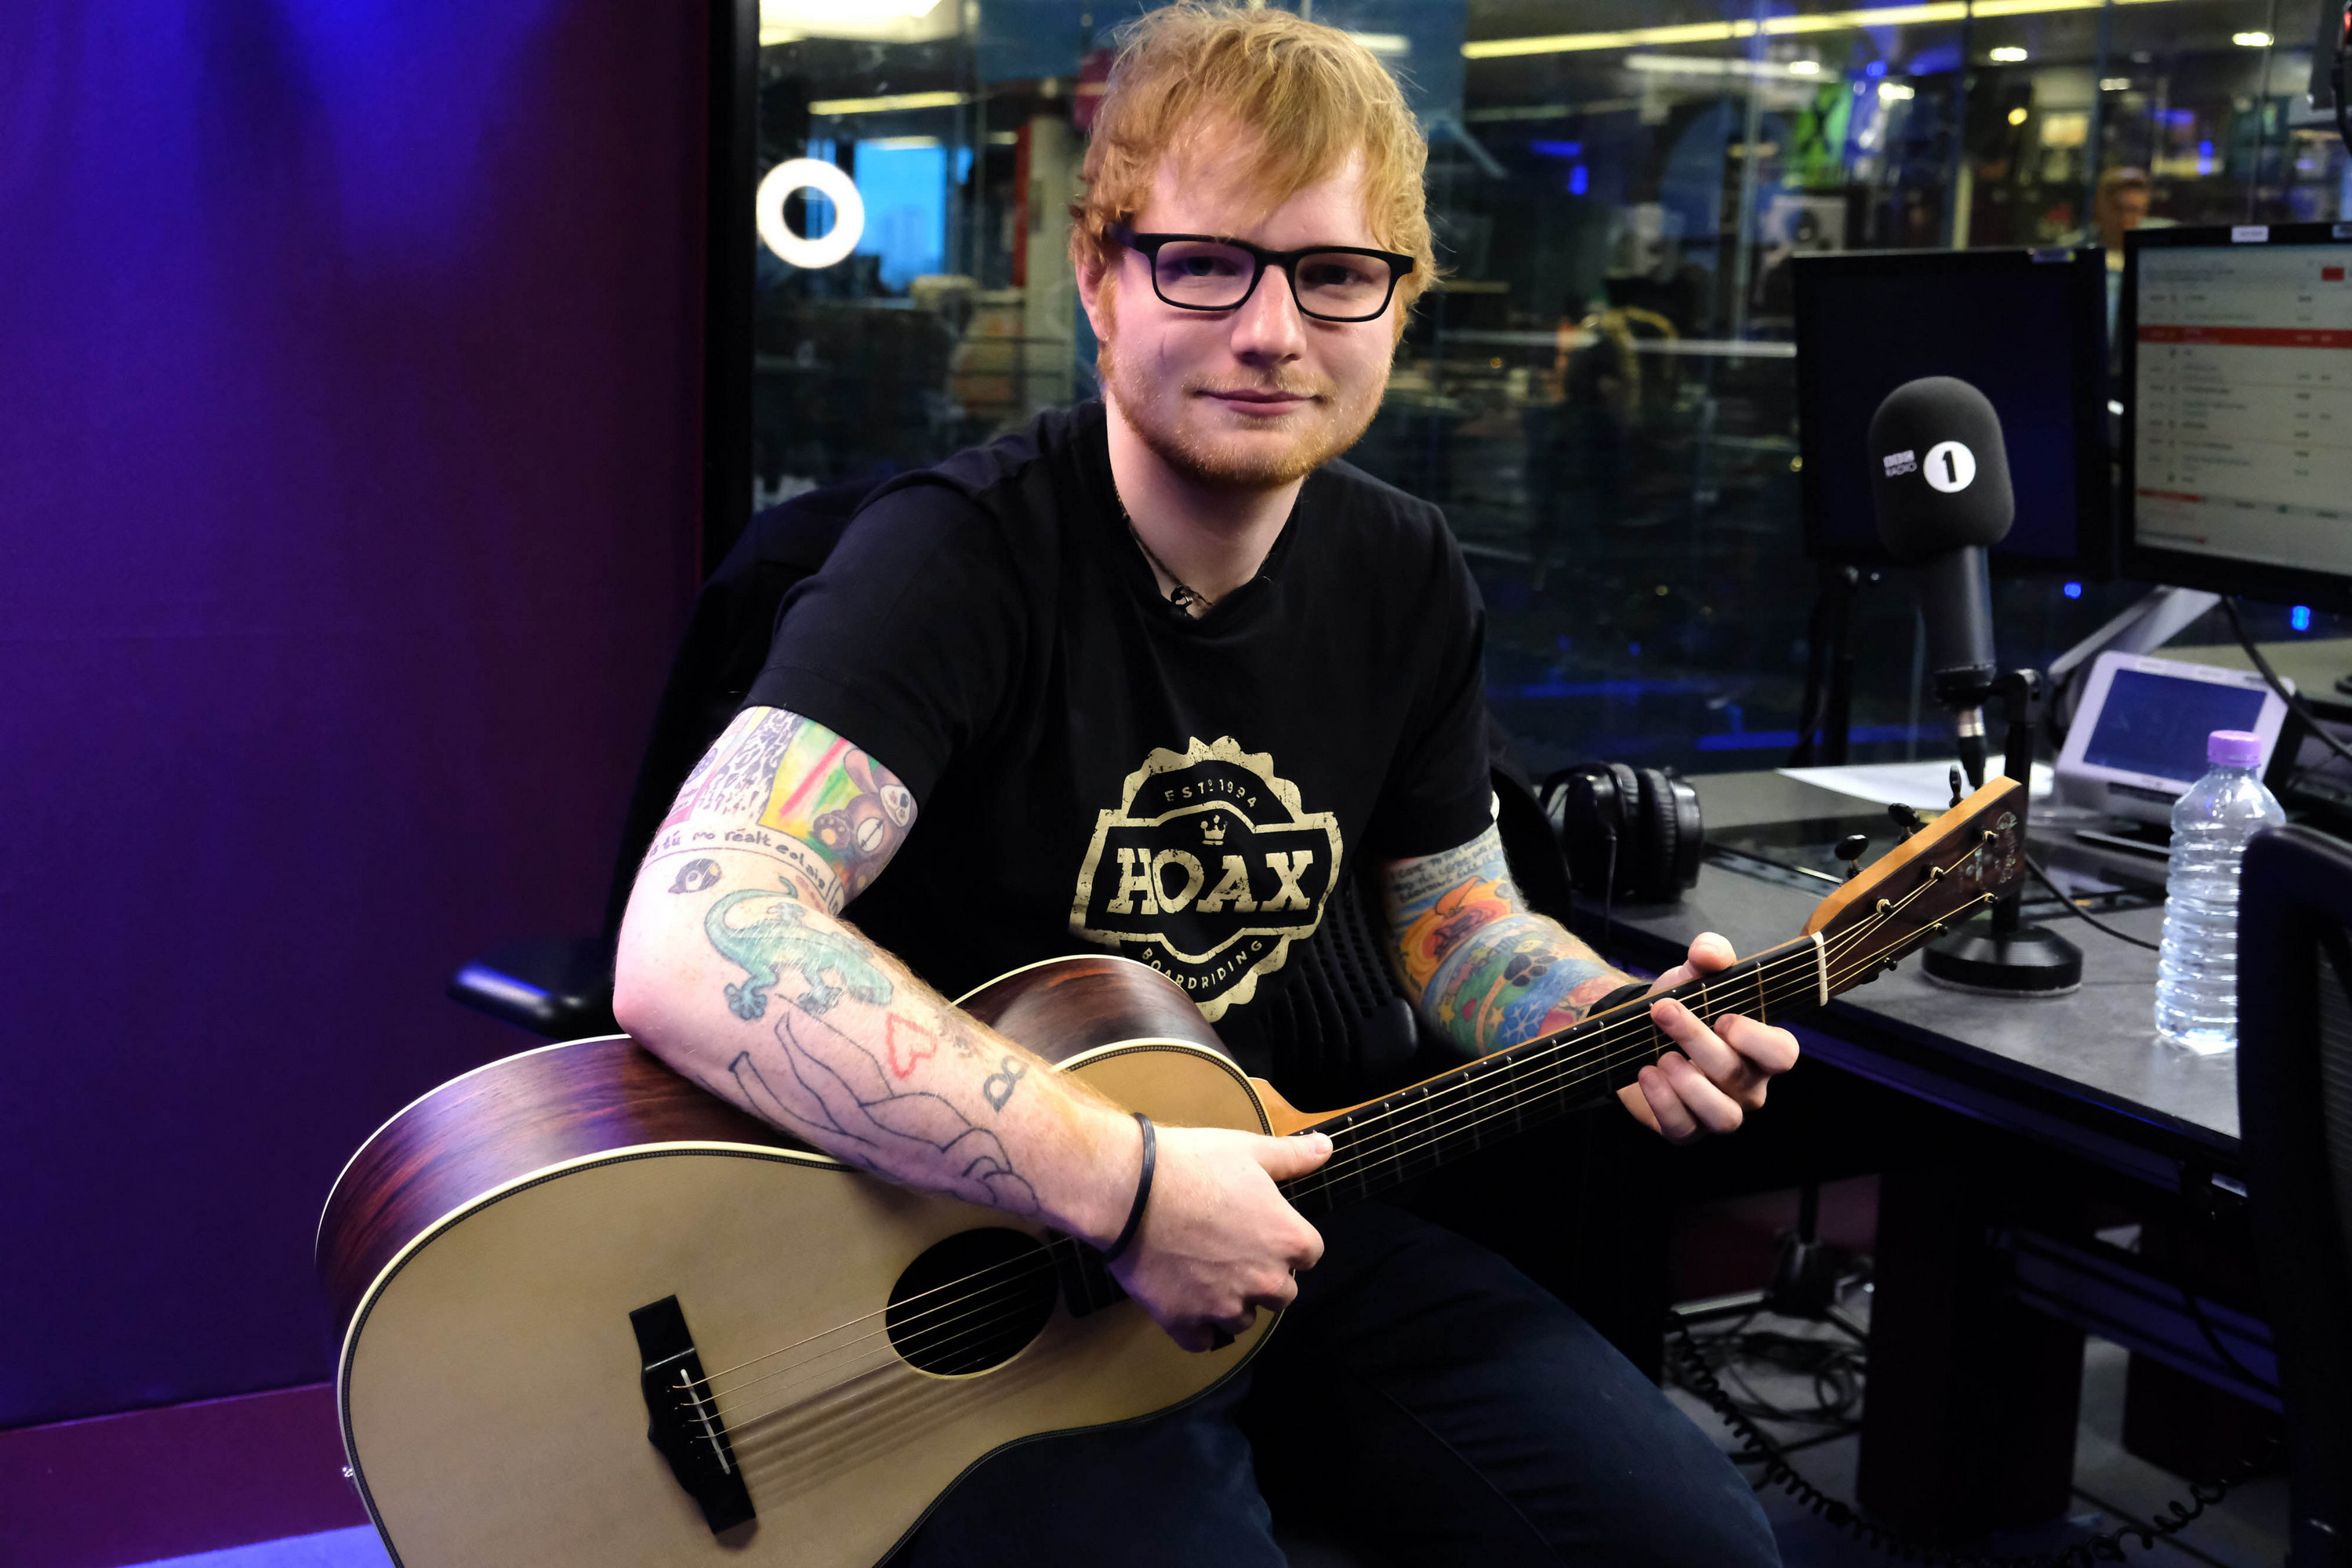 https://www.theplace.ru/archive/ed_sheeran/img/06.01.2017_bbc_radio_1_(4).jpg